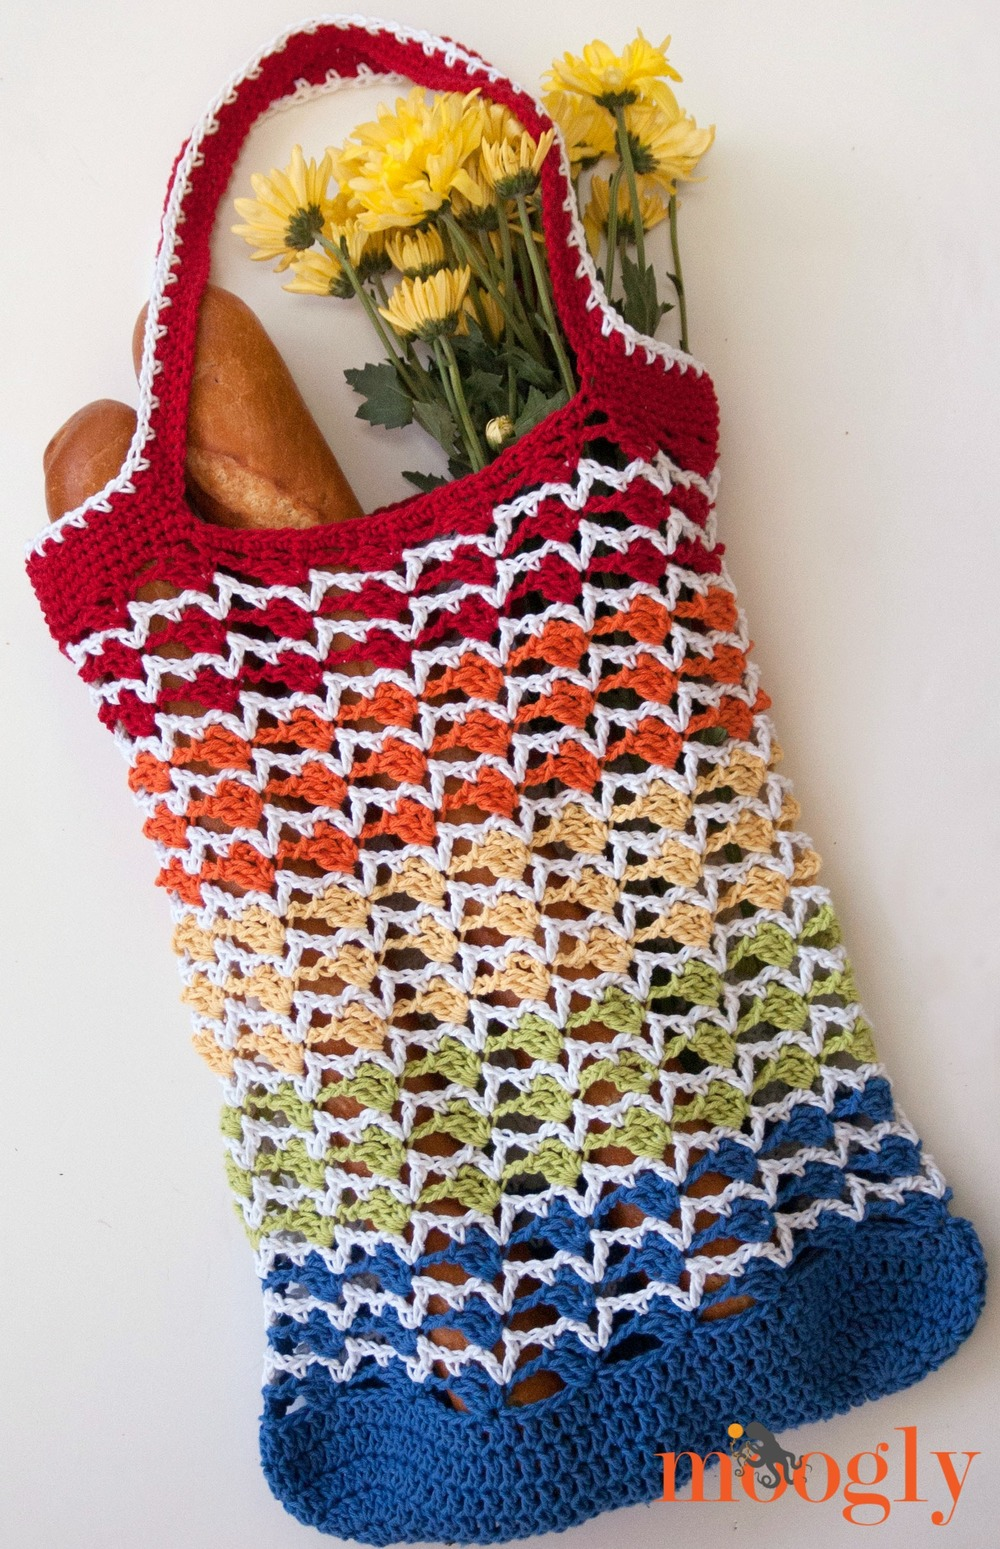 Rainbow Crochet Tote Bag Allfreecrochet Com